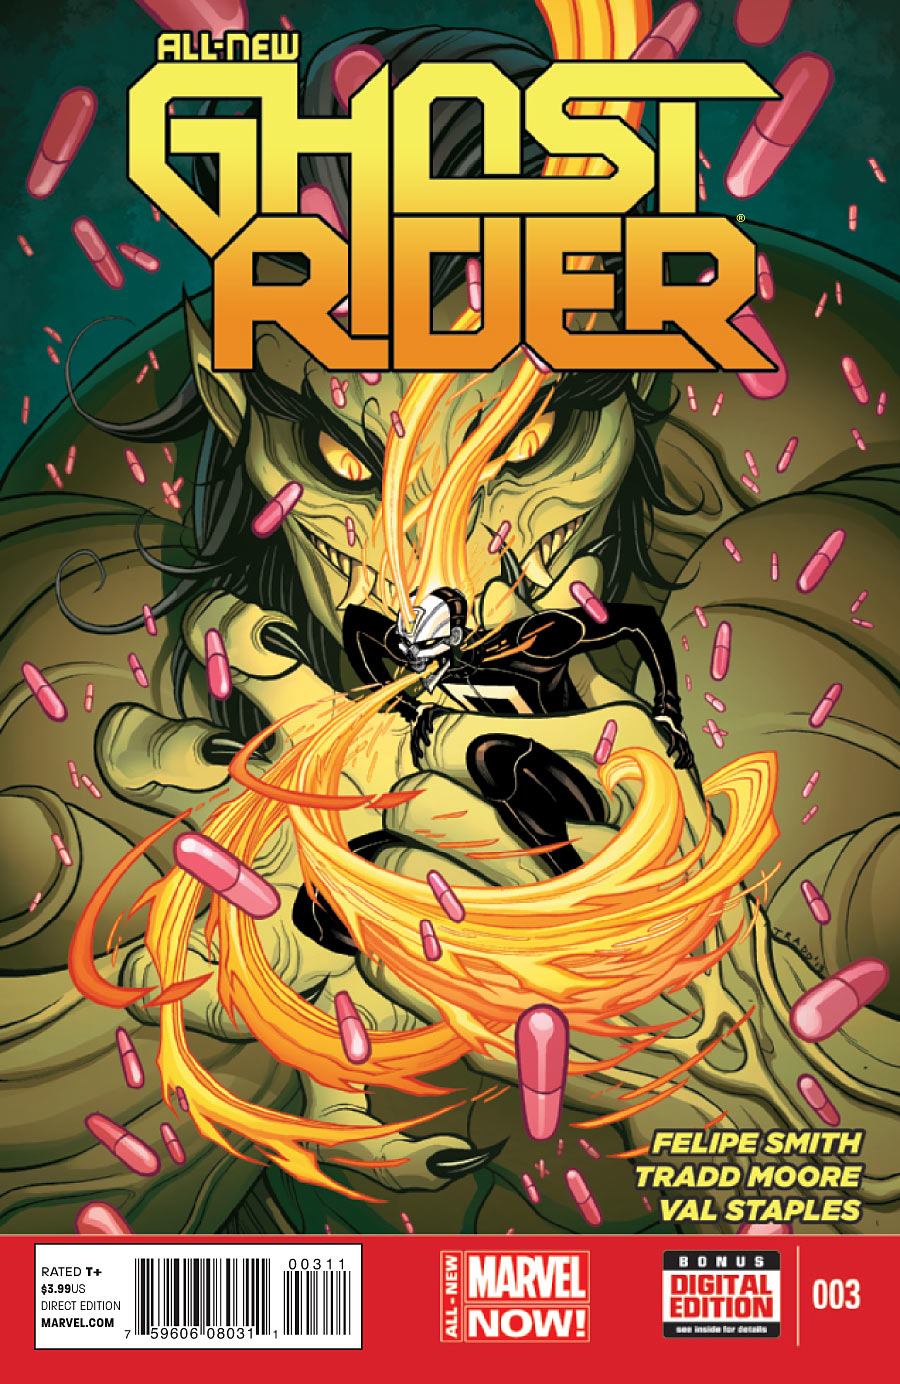 All-New Ghost Rider Vol.1 #3